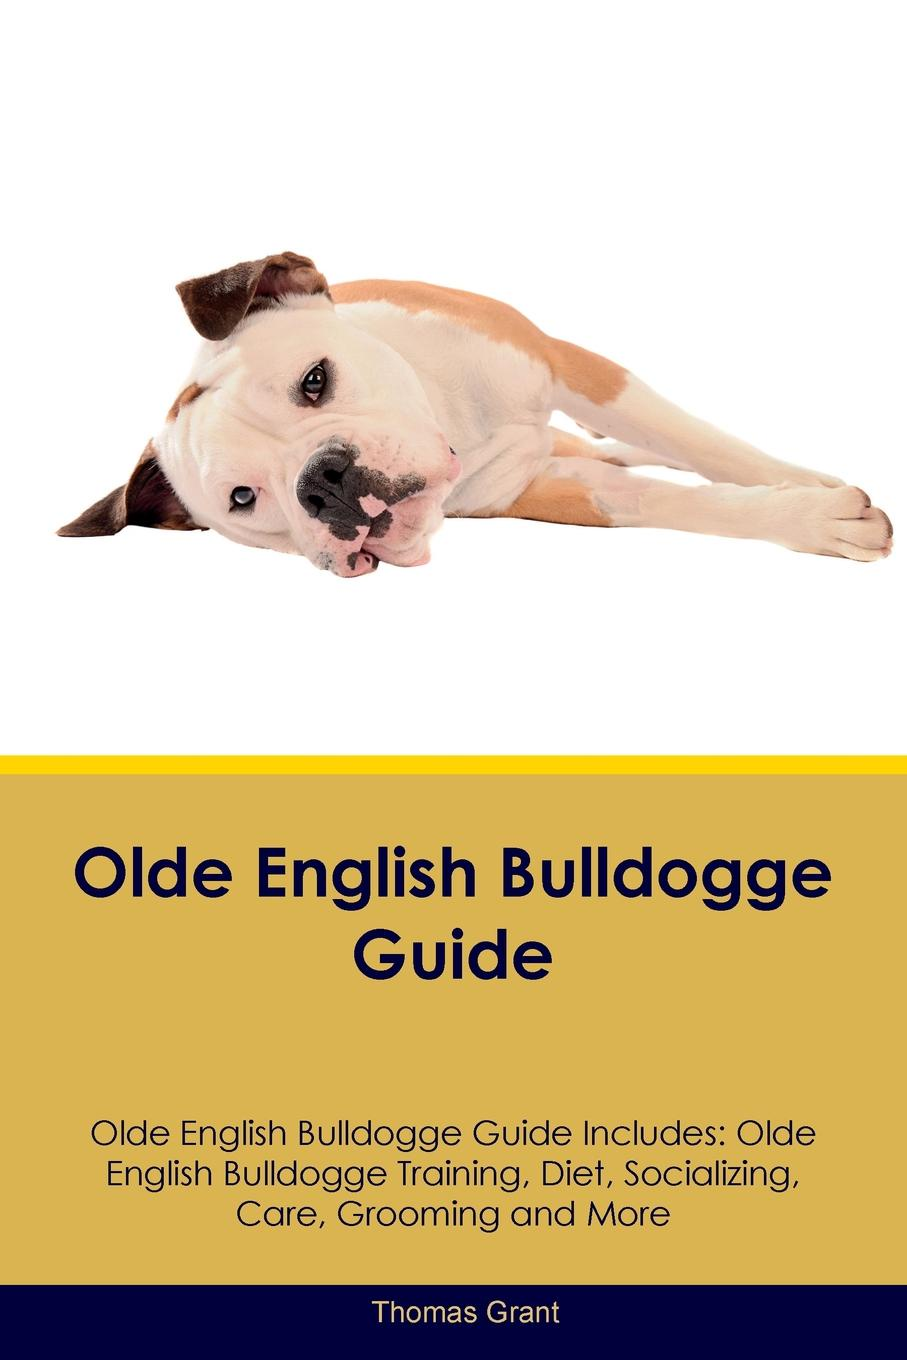 Thomas Grant Olde English Bulldogge Guide Includes. Training, Diet, Socializing, Care, Grooming, Breeding and More